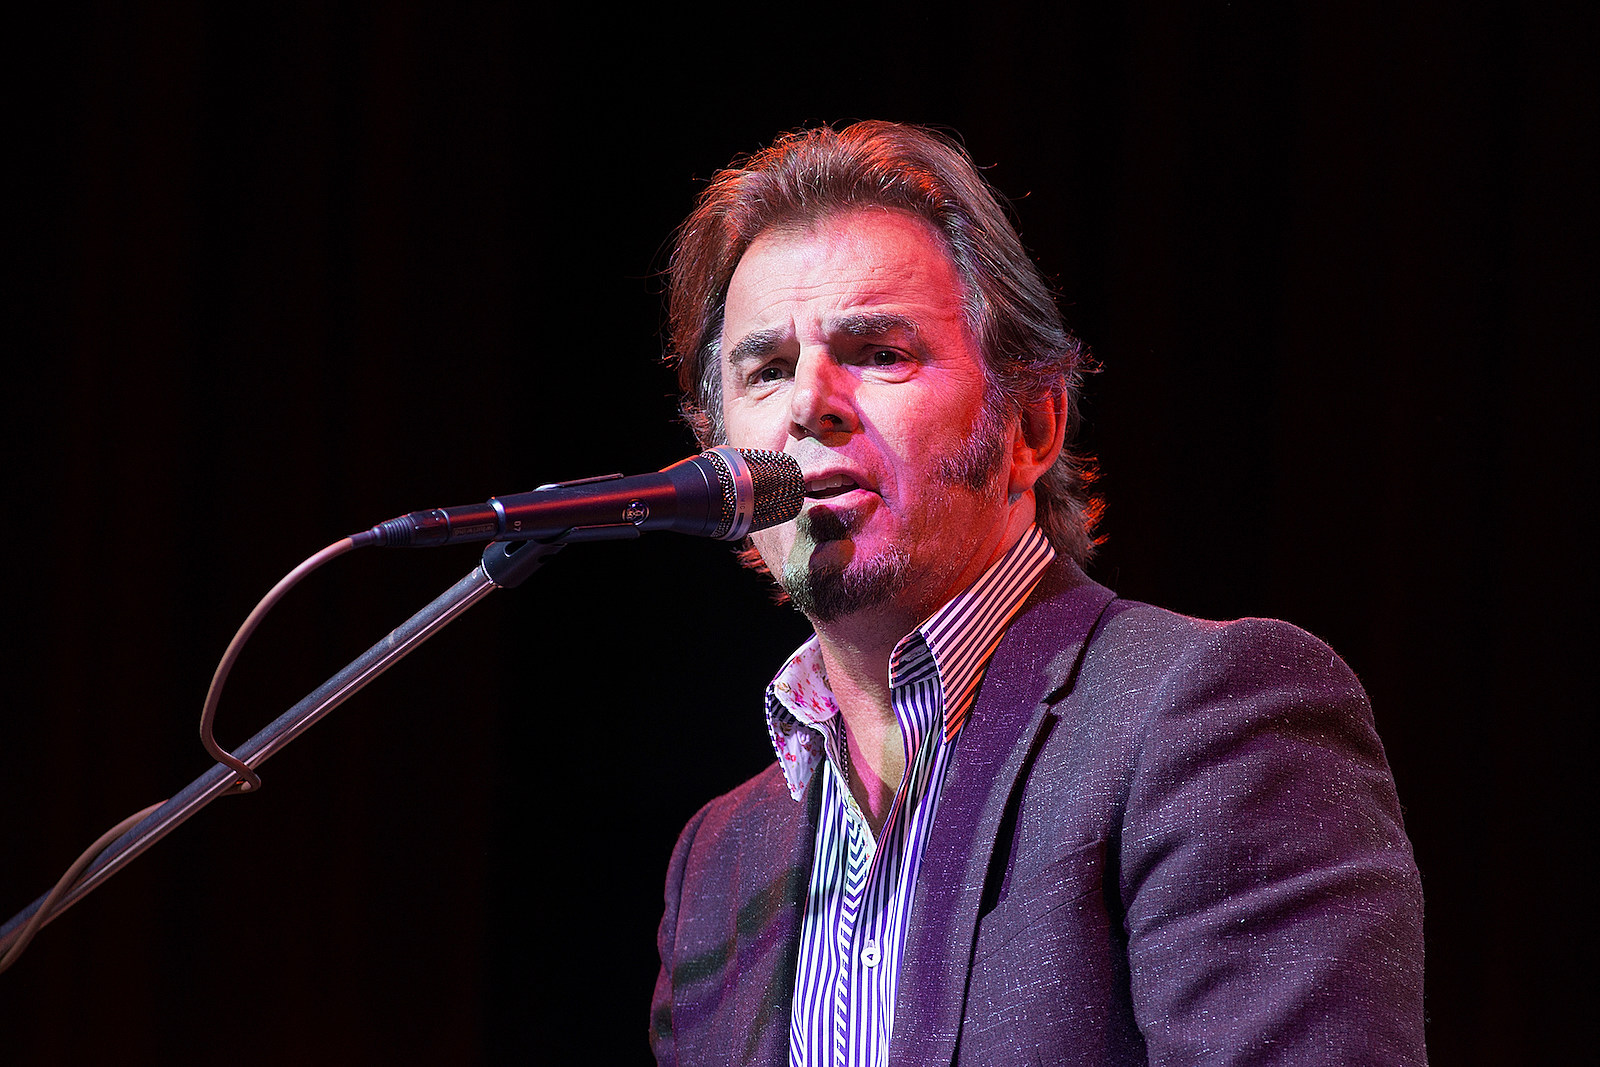 Jonathan Cain's Journey to Stardom Began With Unlikely Instrument